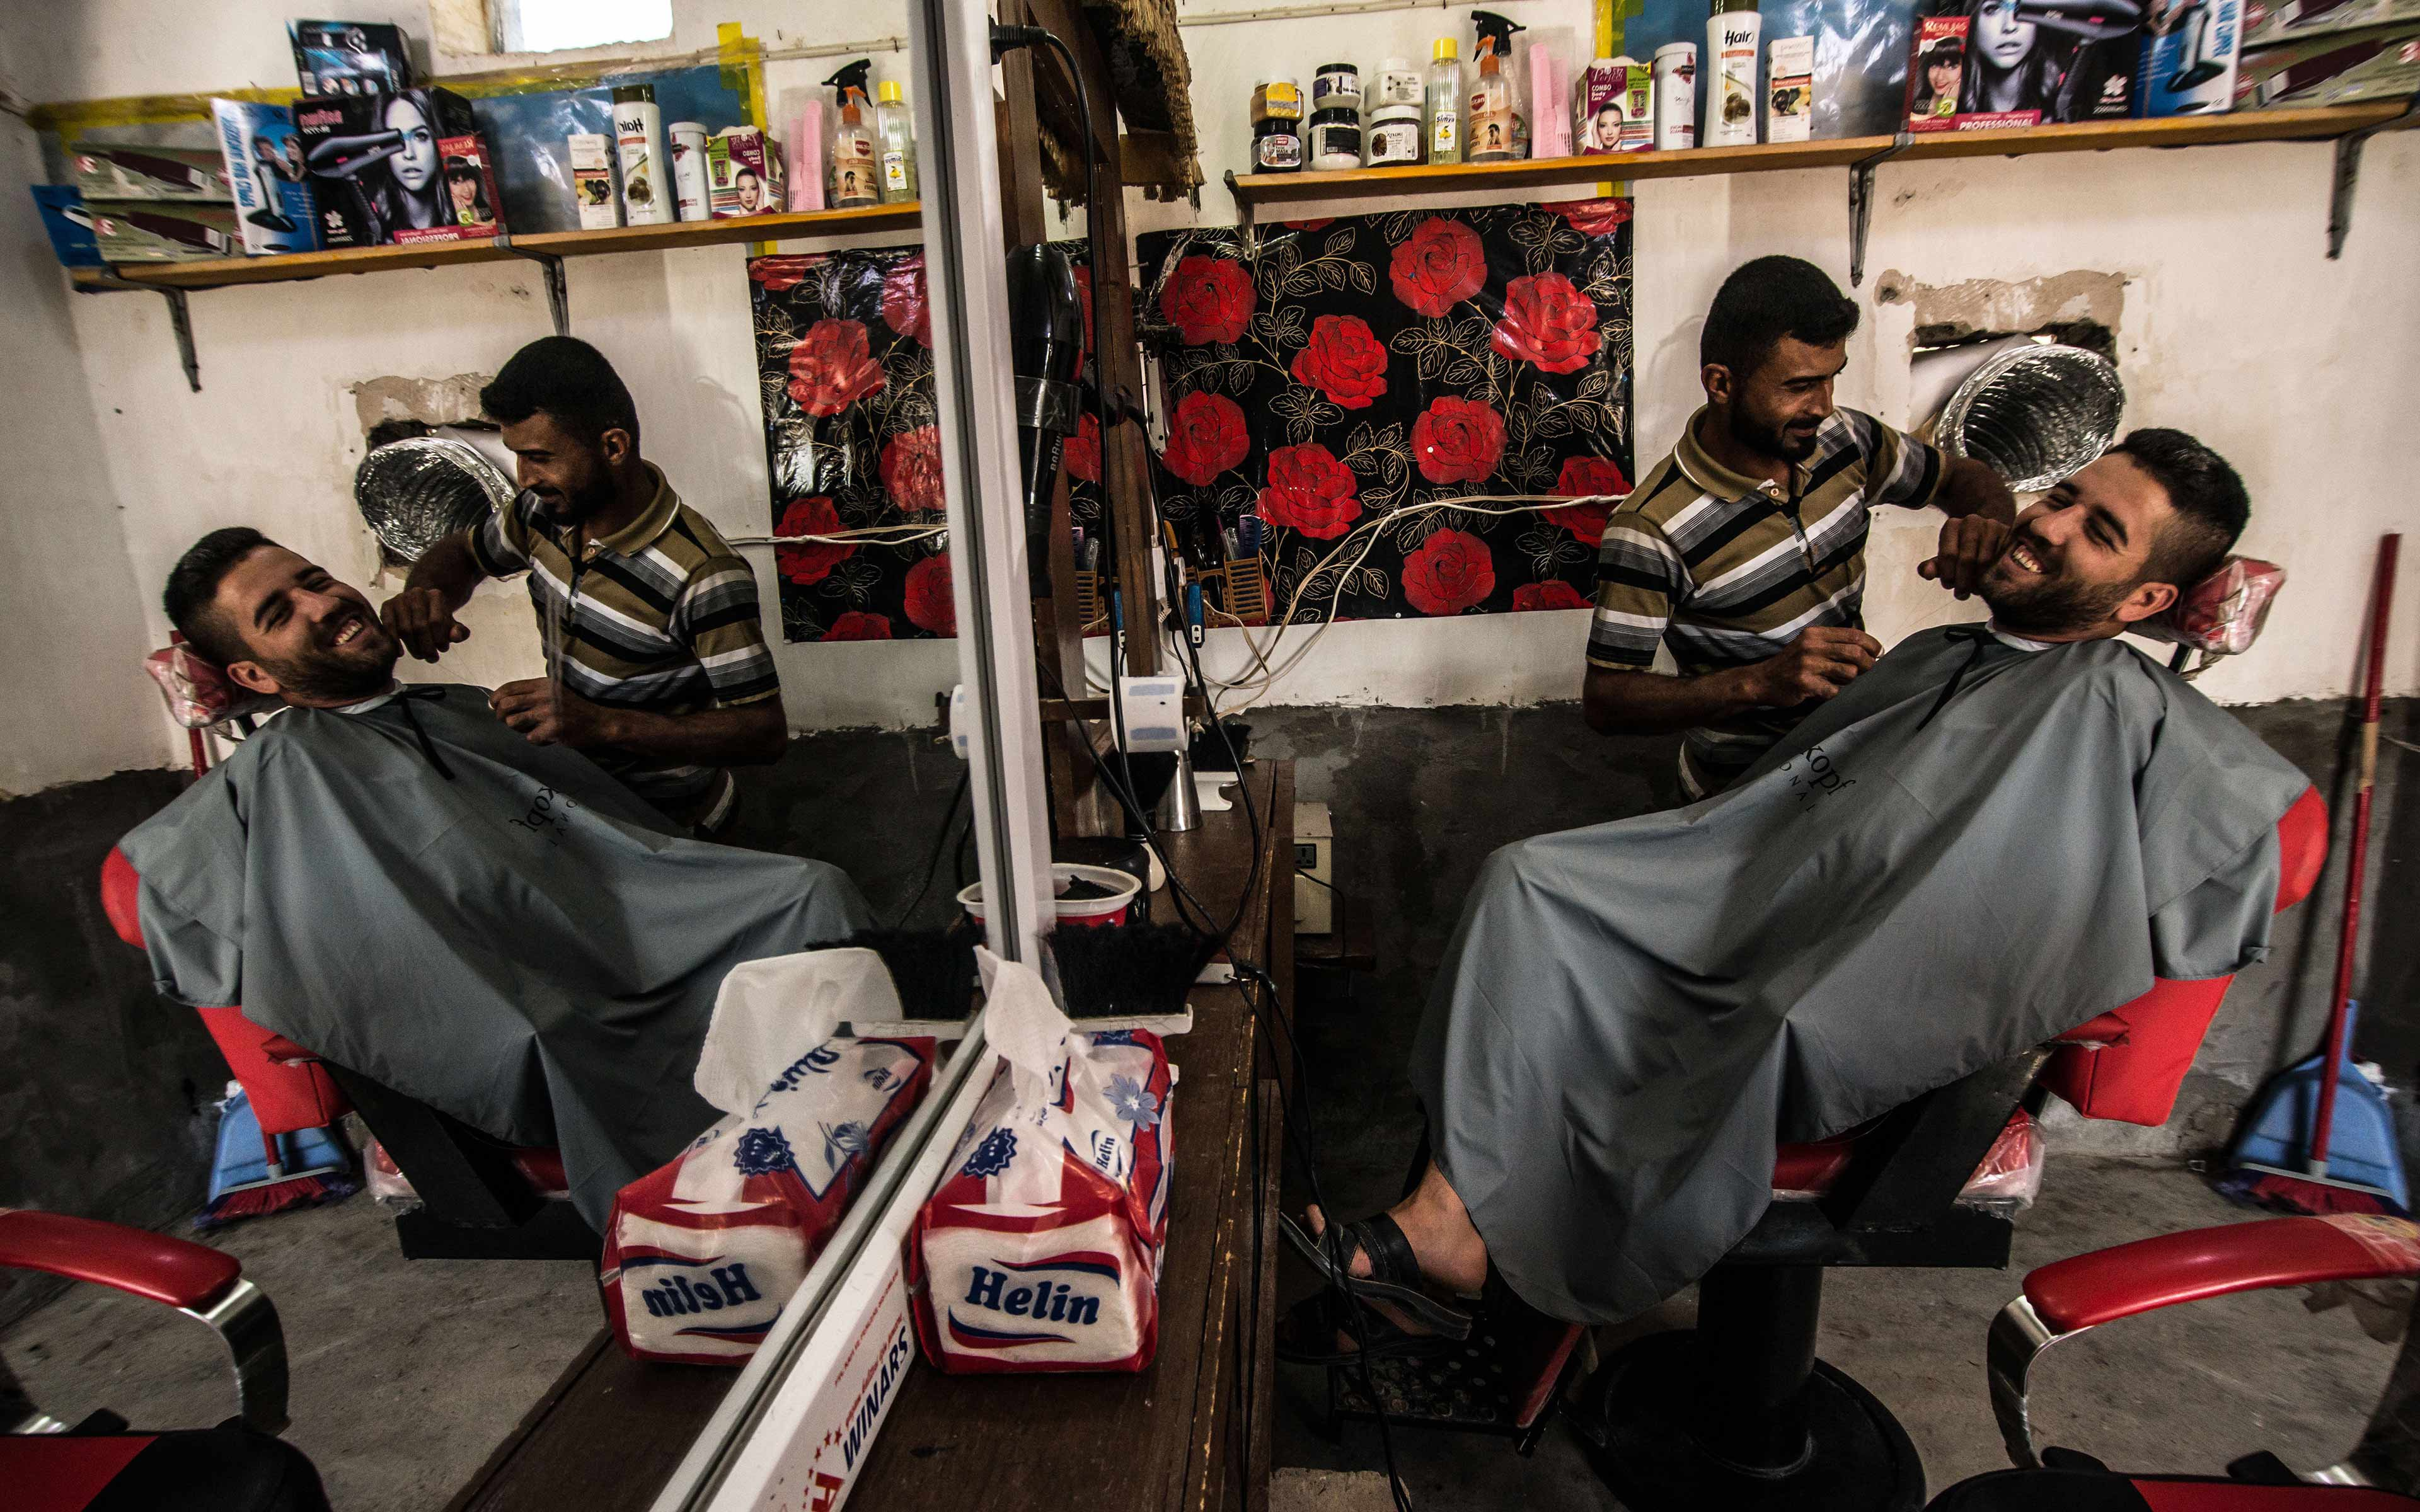 Qassim Daoud, whose name has been changed for his protection, was able to restart his barber shop with help from Oxfam. The shop was looted by ISIS in 2014 when it took over the village. The community has now been reclaimed and Daoud is happily back at work.